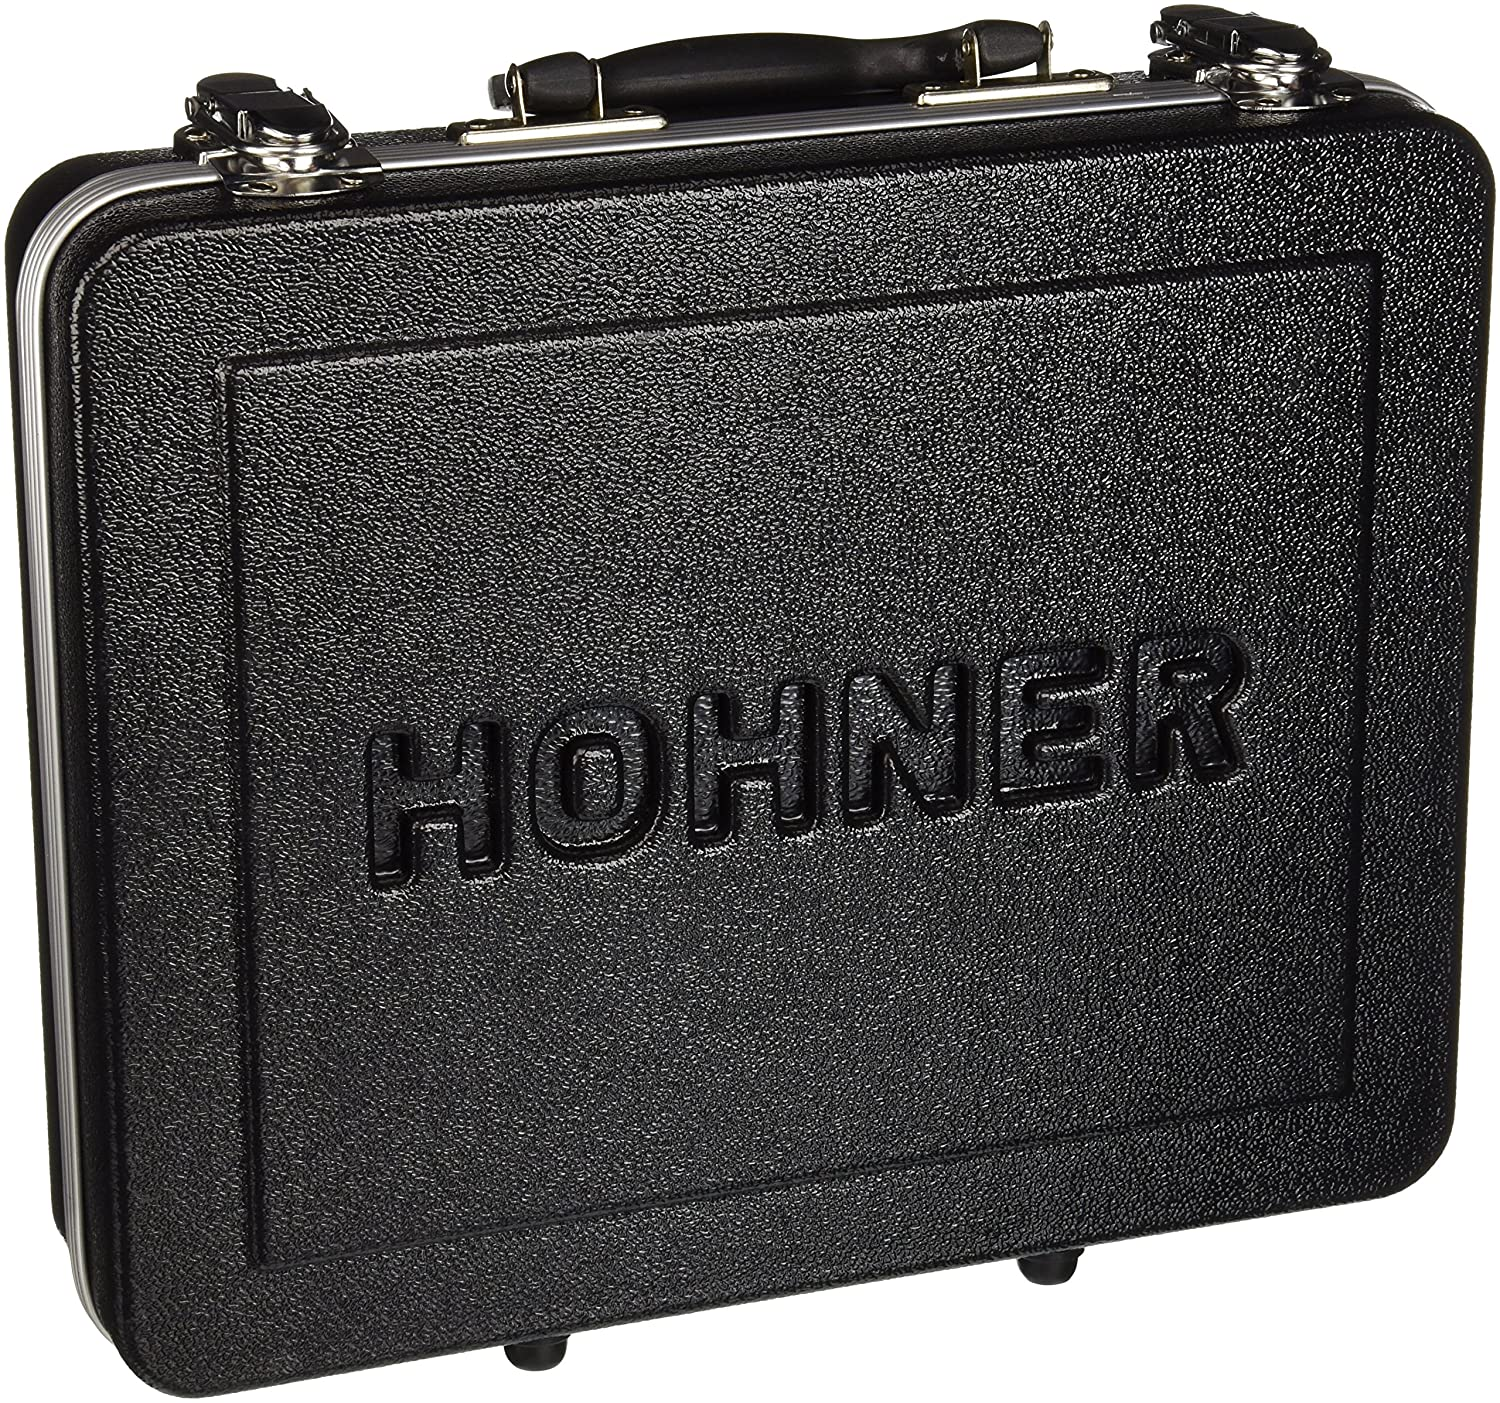 Hohner 91141 Harmonious Box Hard Plastic Case with Aluminum Frame offers a great solution. C-12